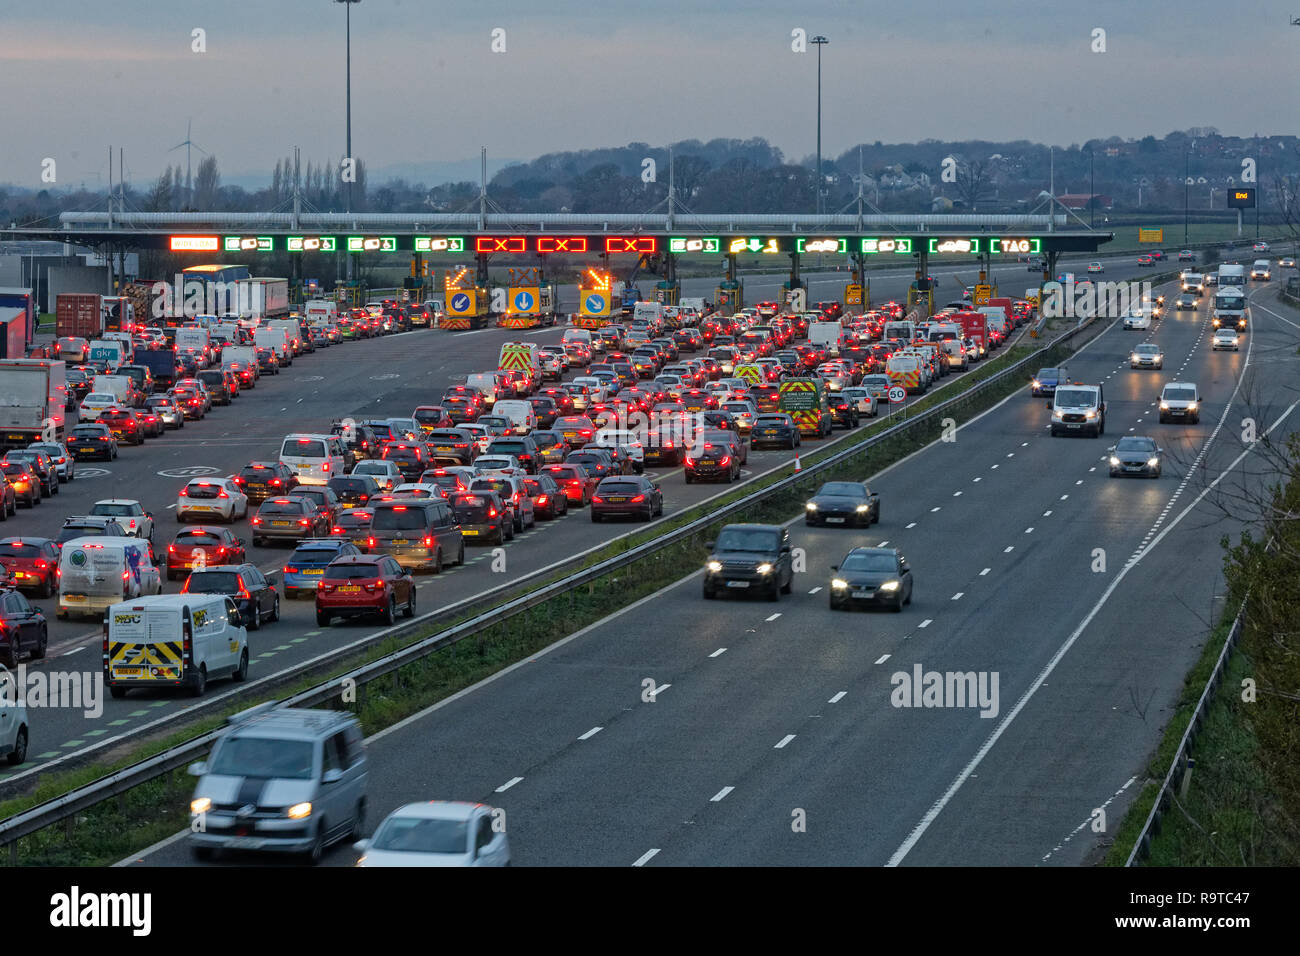 Pictured: Long queues of cars at the Severn Bridge tolls on the westbound carriageway of the M4 in south Wales, UK. Friday 14 December 2018 Re: Work t - Stock Image